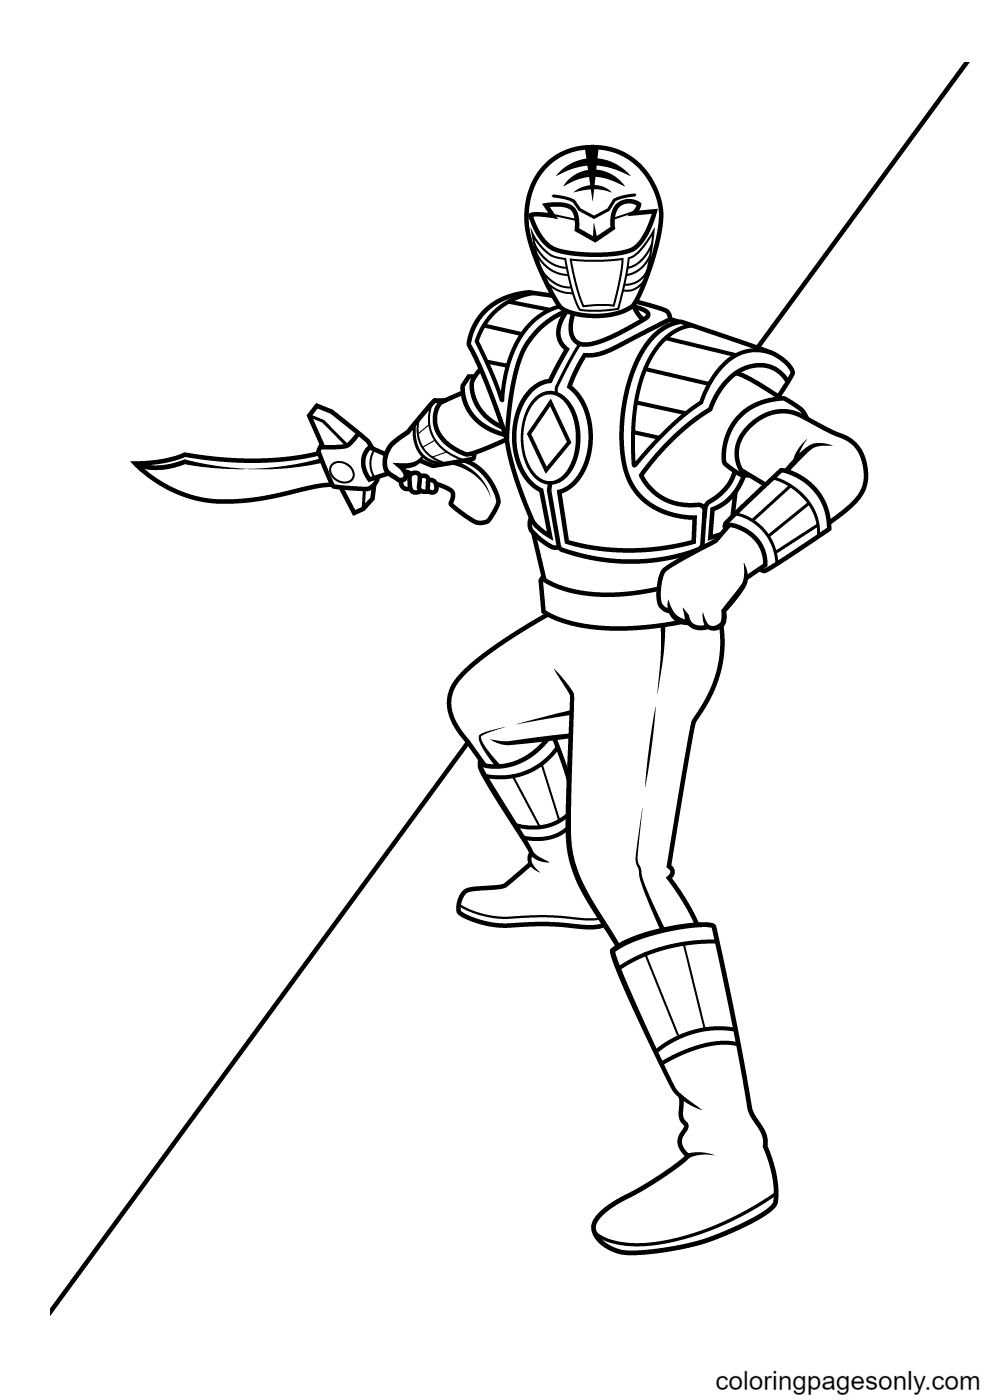 White Rangers Coloring Page